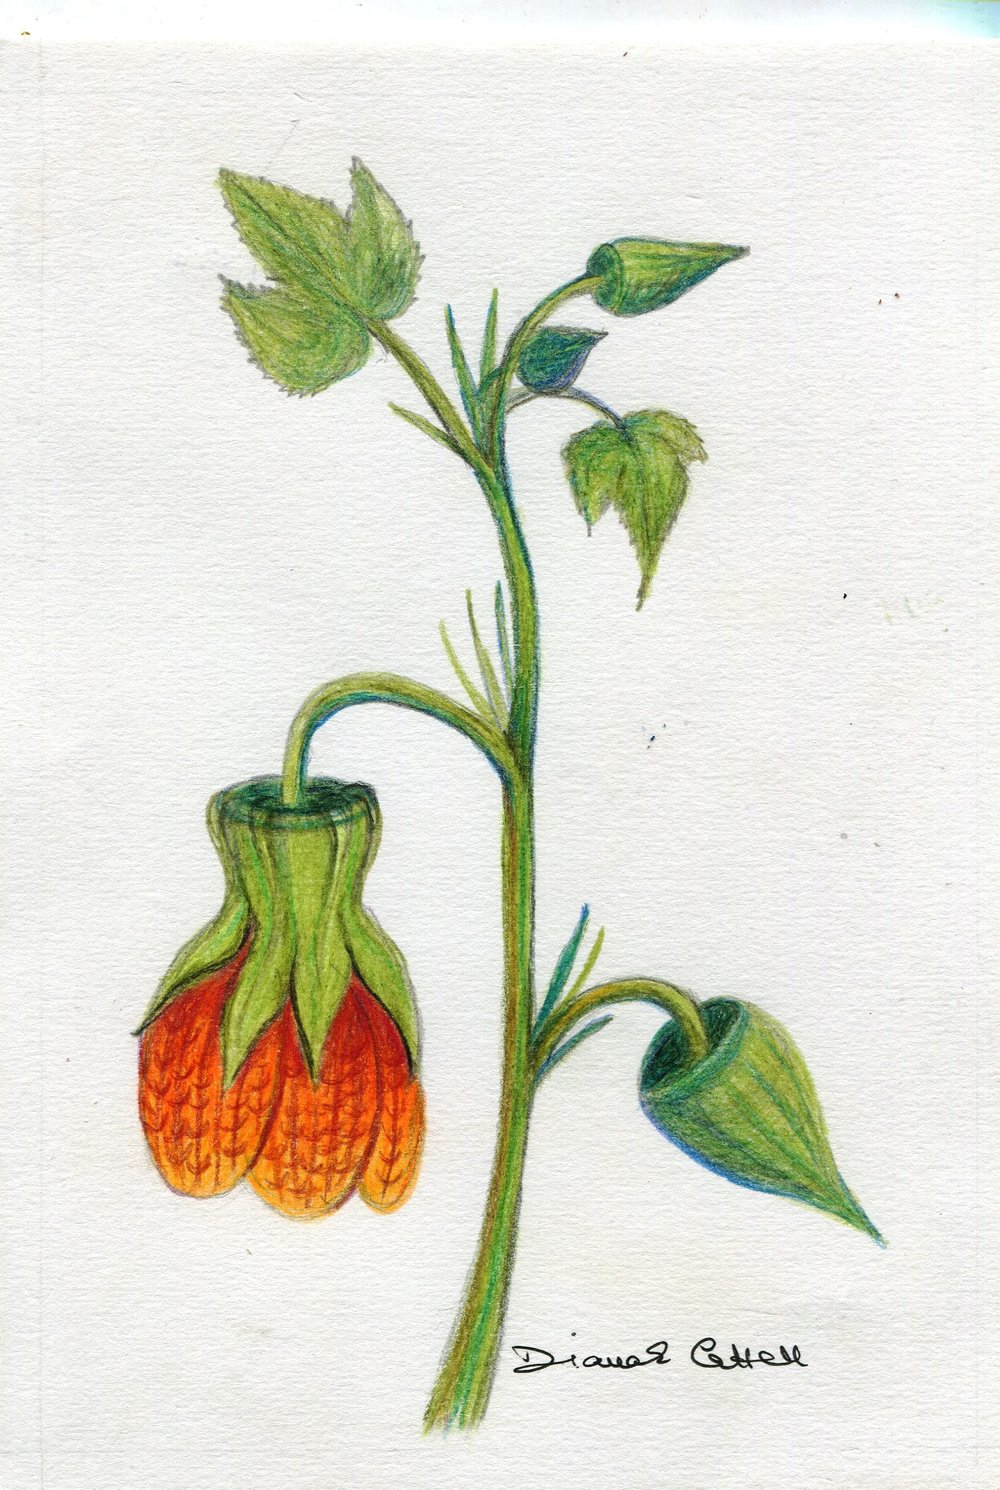 19b Diana Cattell, Chinese Lantern Flower 2,  Polychrome pencil on paper